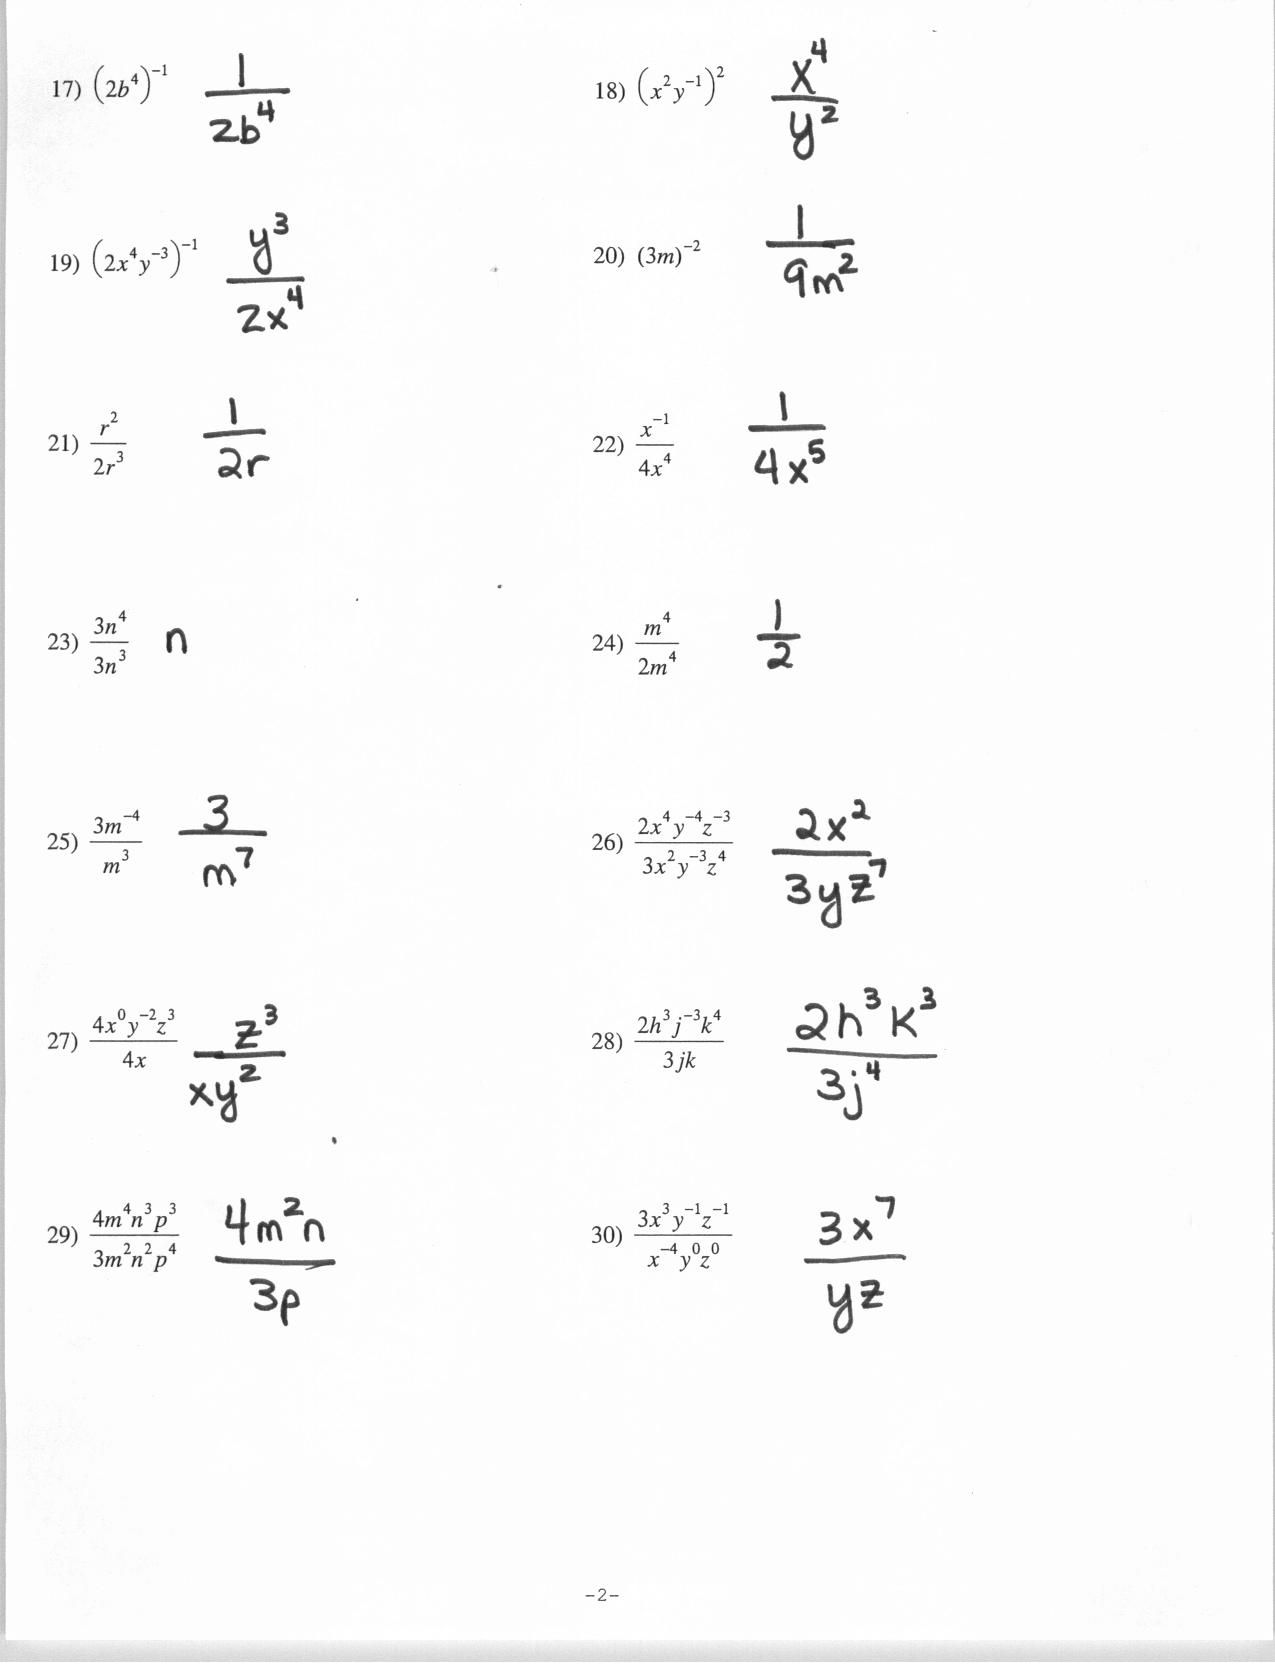 Worksheet Properties Of Exponents Worksheet Answers 1000 images about algebra on pinterest mobile app equations and worksheets